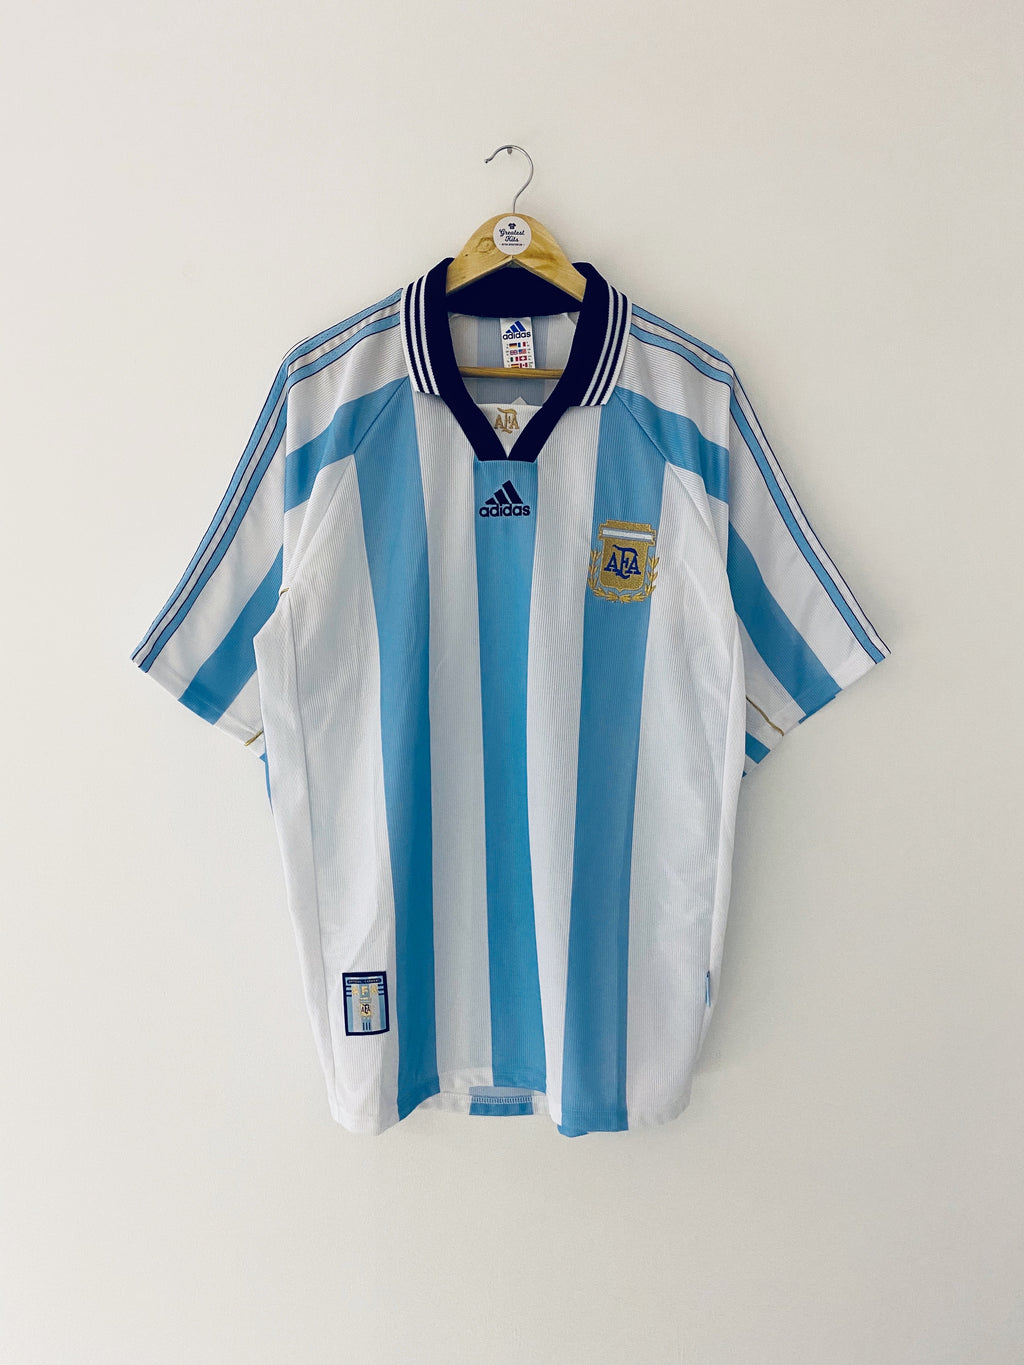 1998/99 Argentina Home Shirt (XL) 10/10